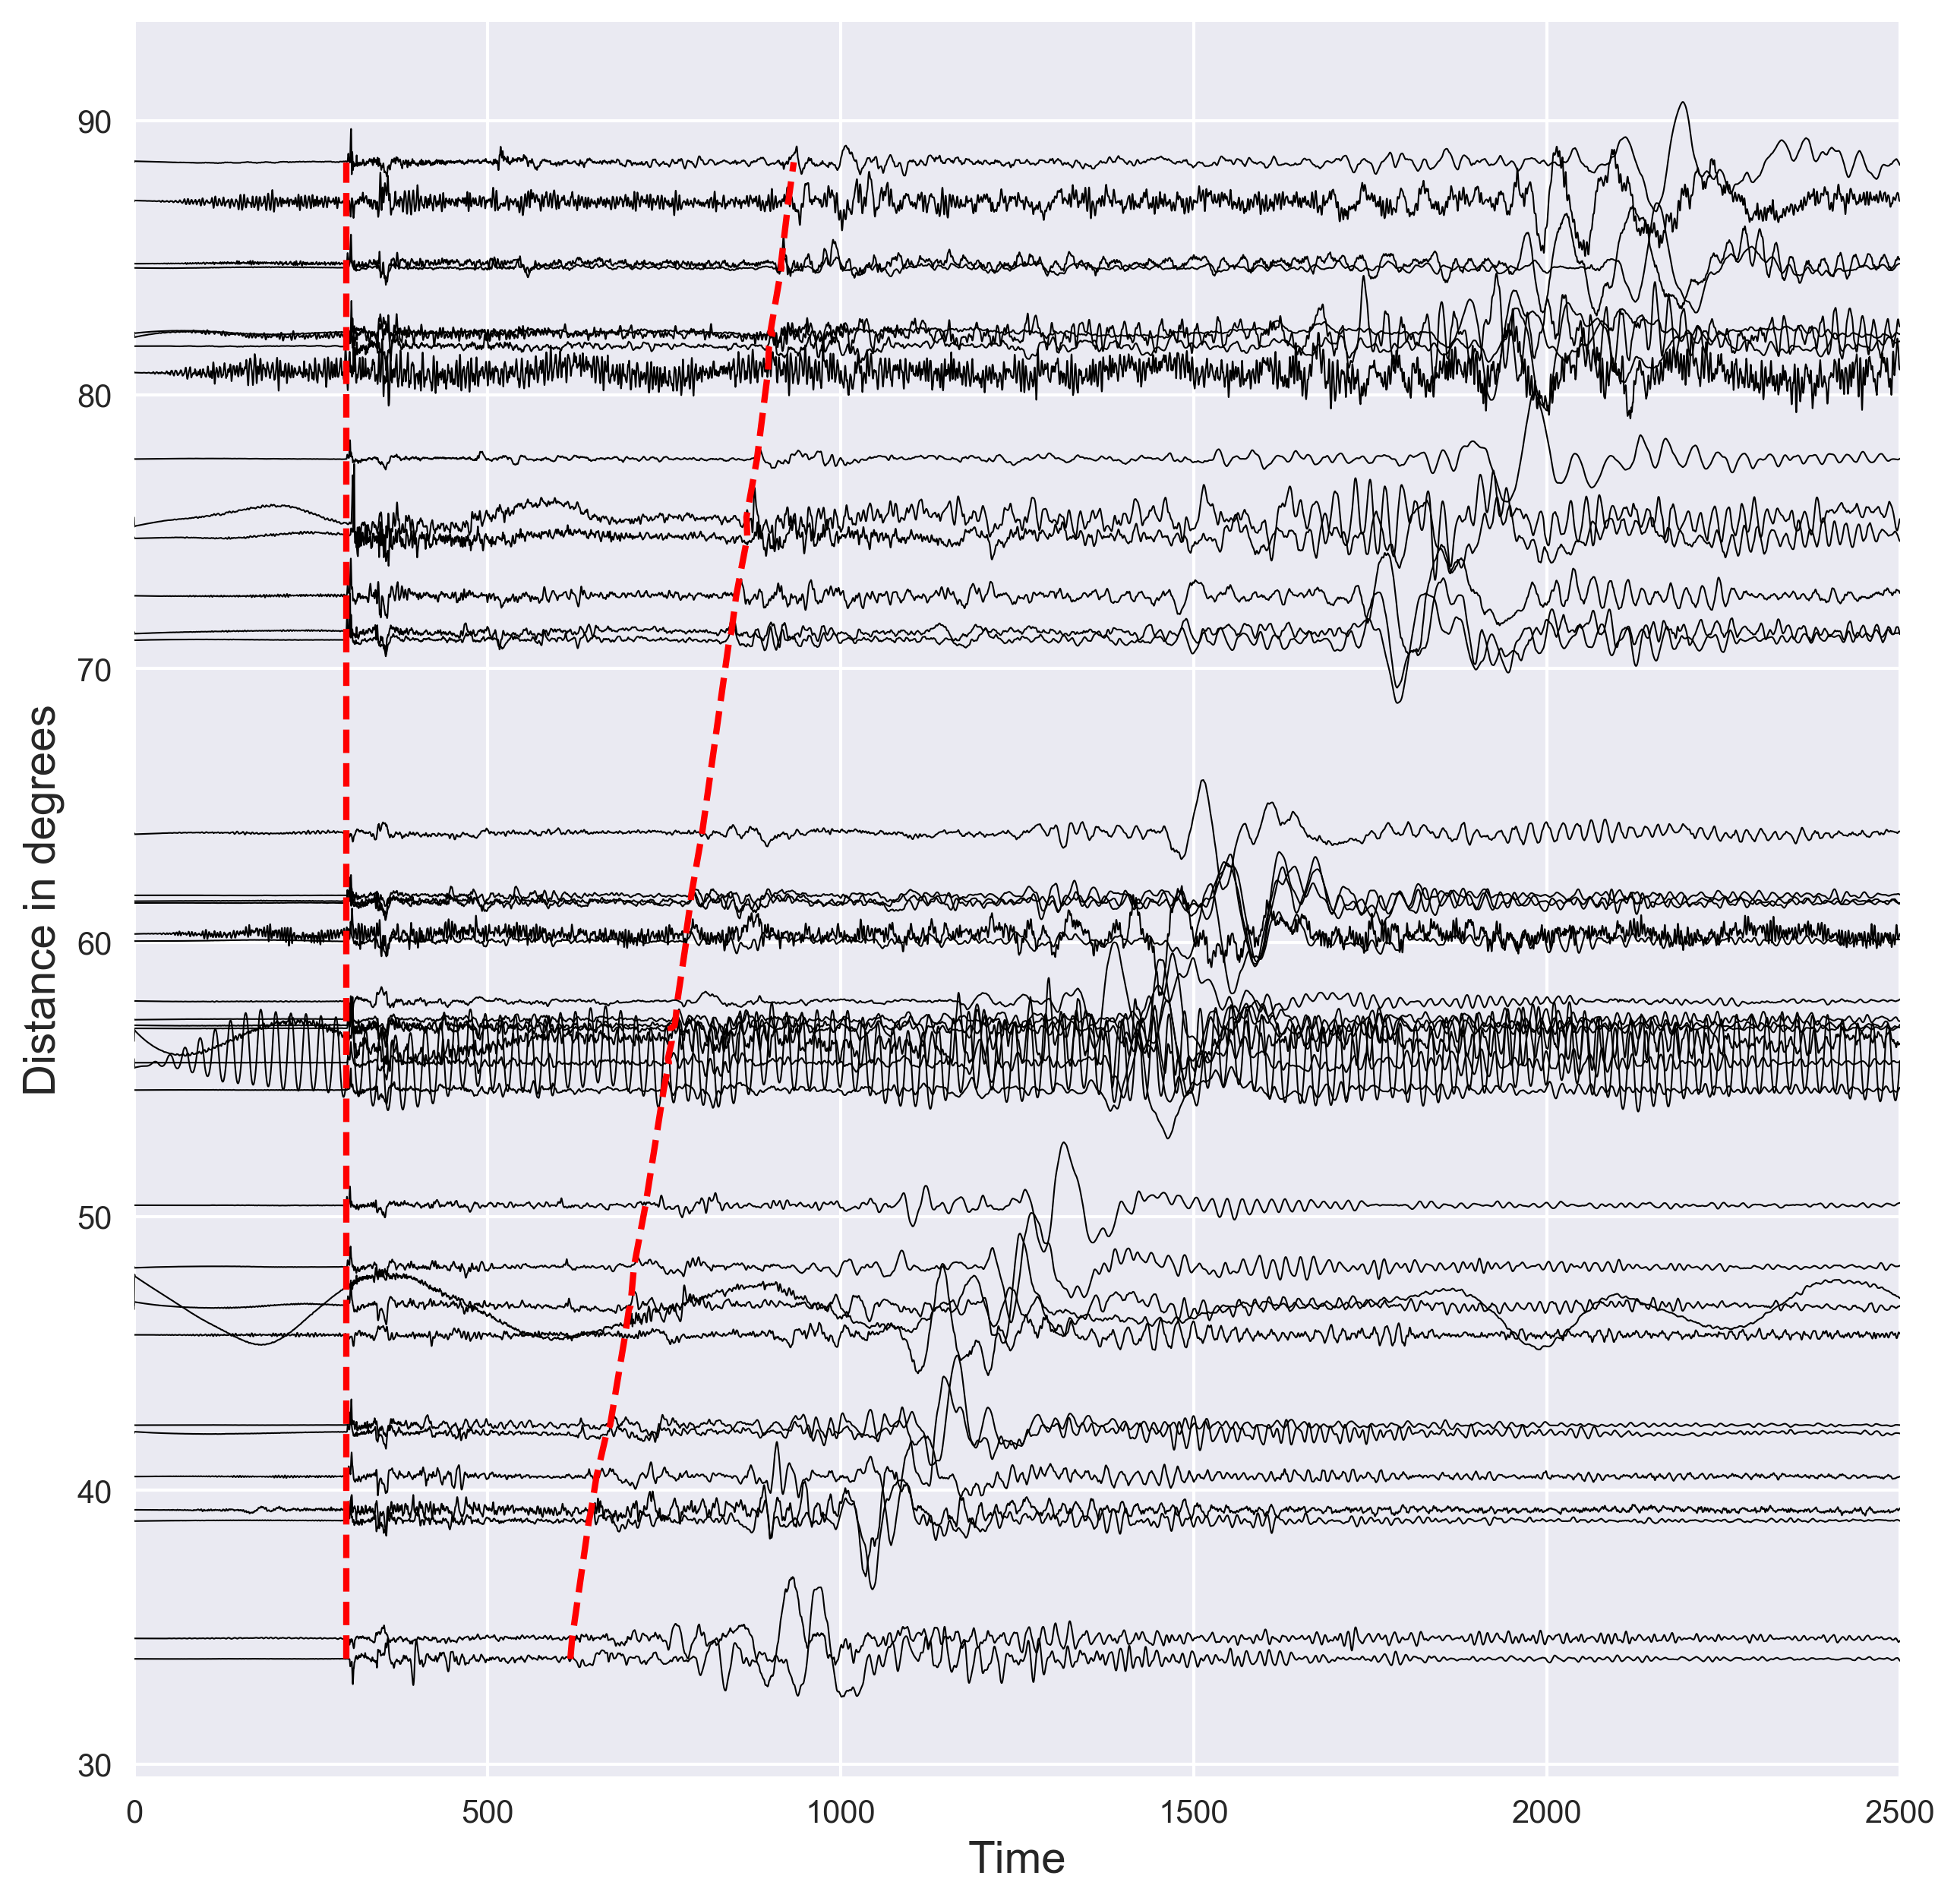 Plotting seismograms with increasing epicentral distance using python